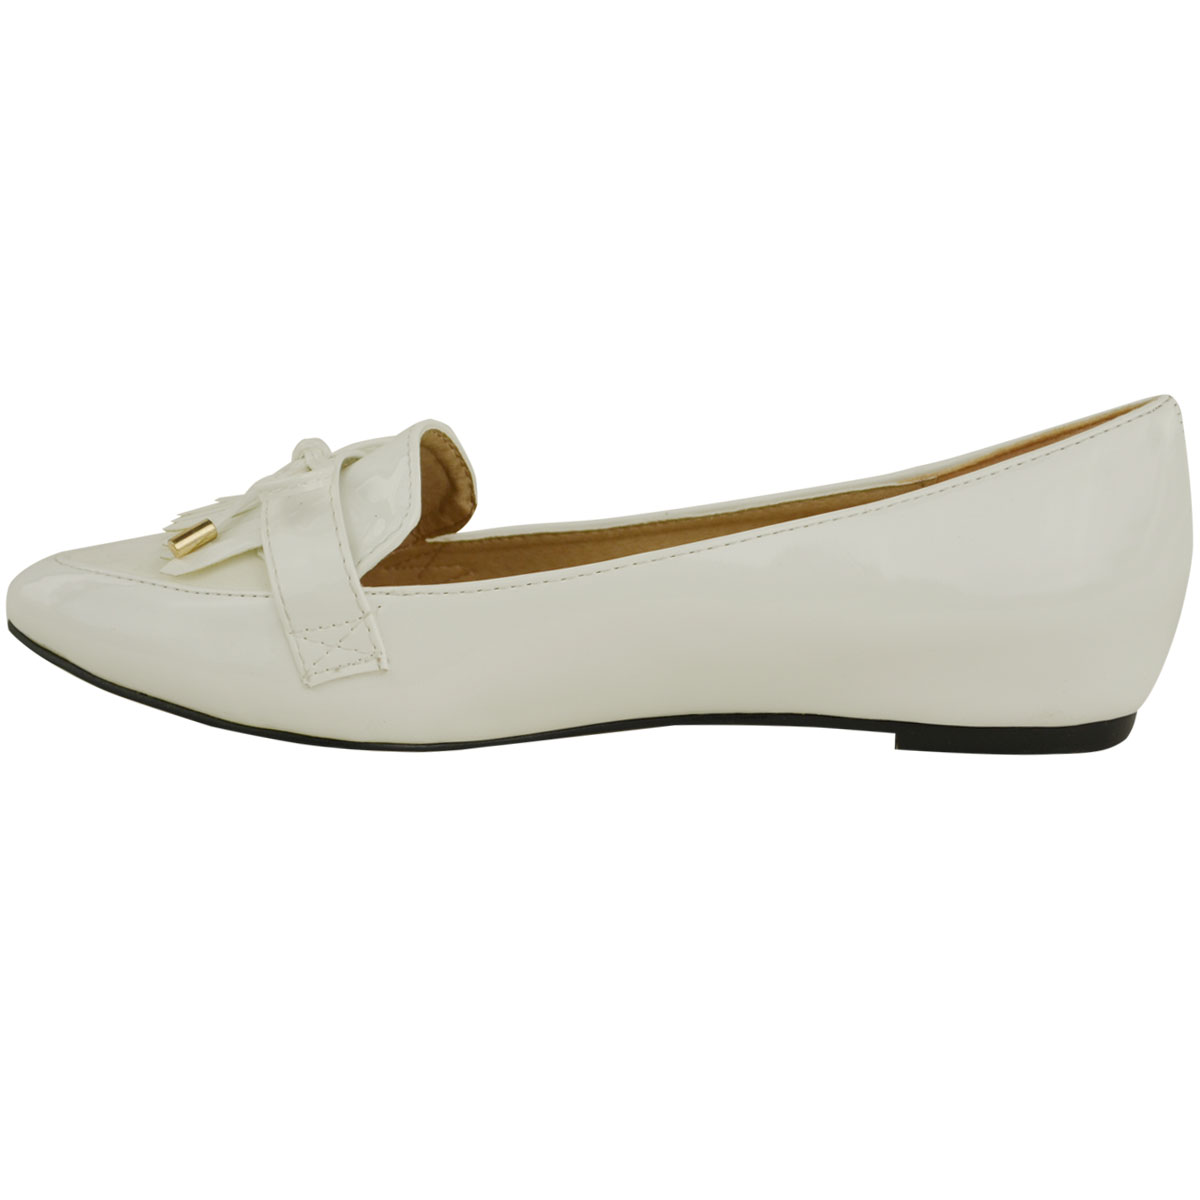 Flat Dolly Shoes With Gold Toe